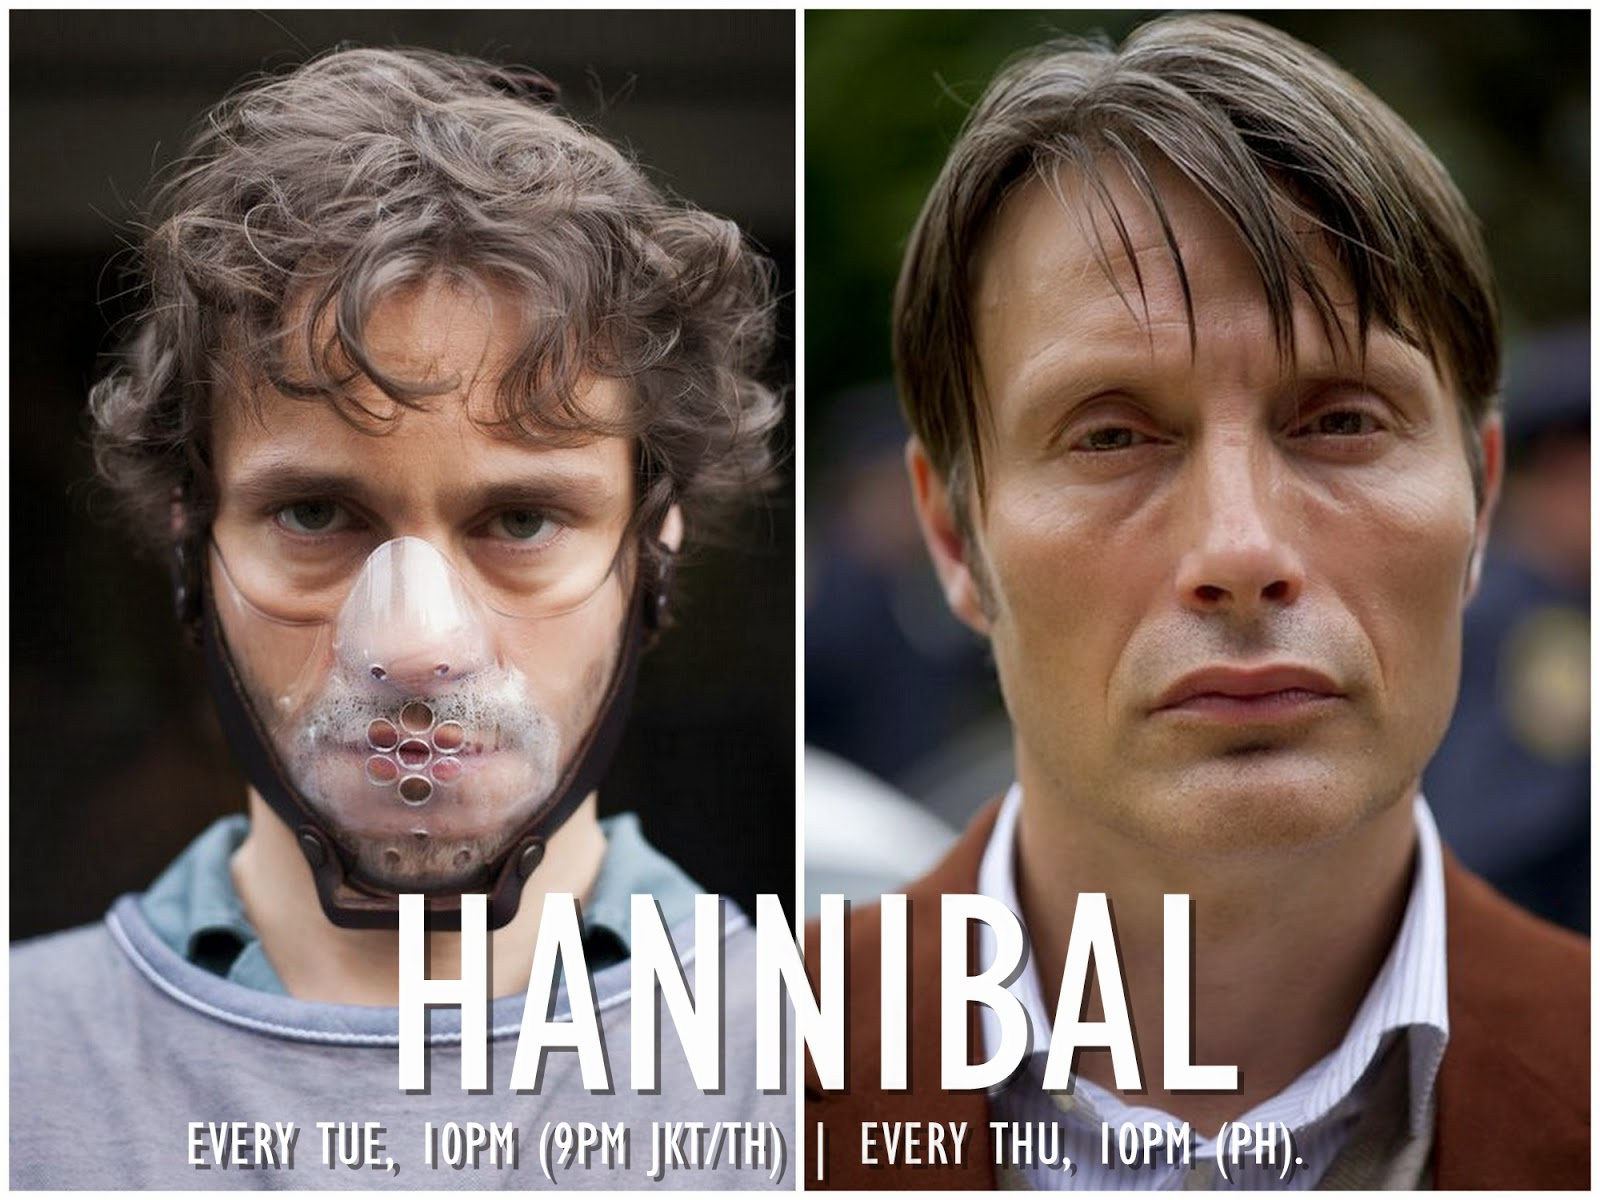 Hannibal - now on AXN every Tuesday 10PM GMT+8